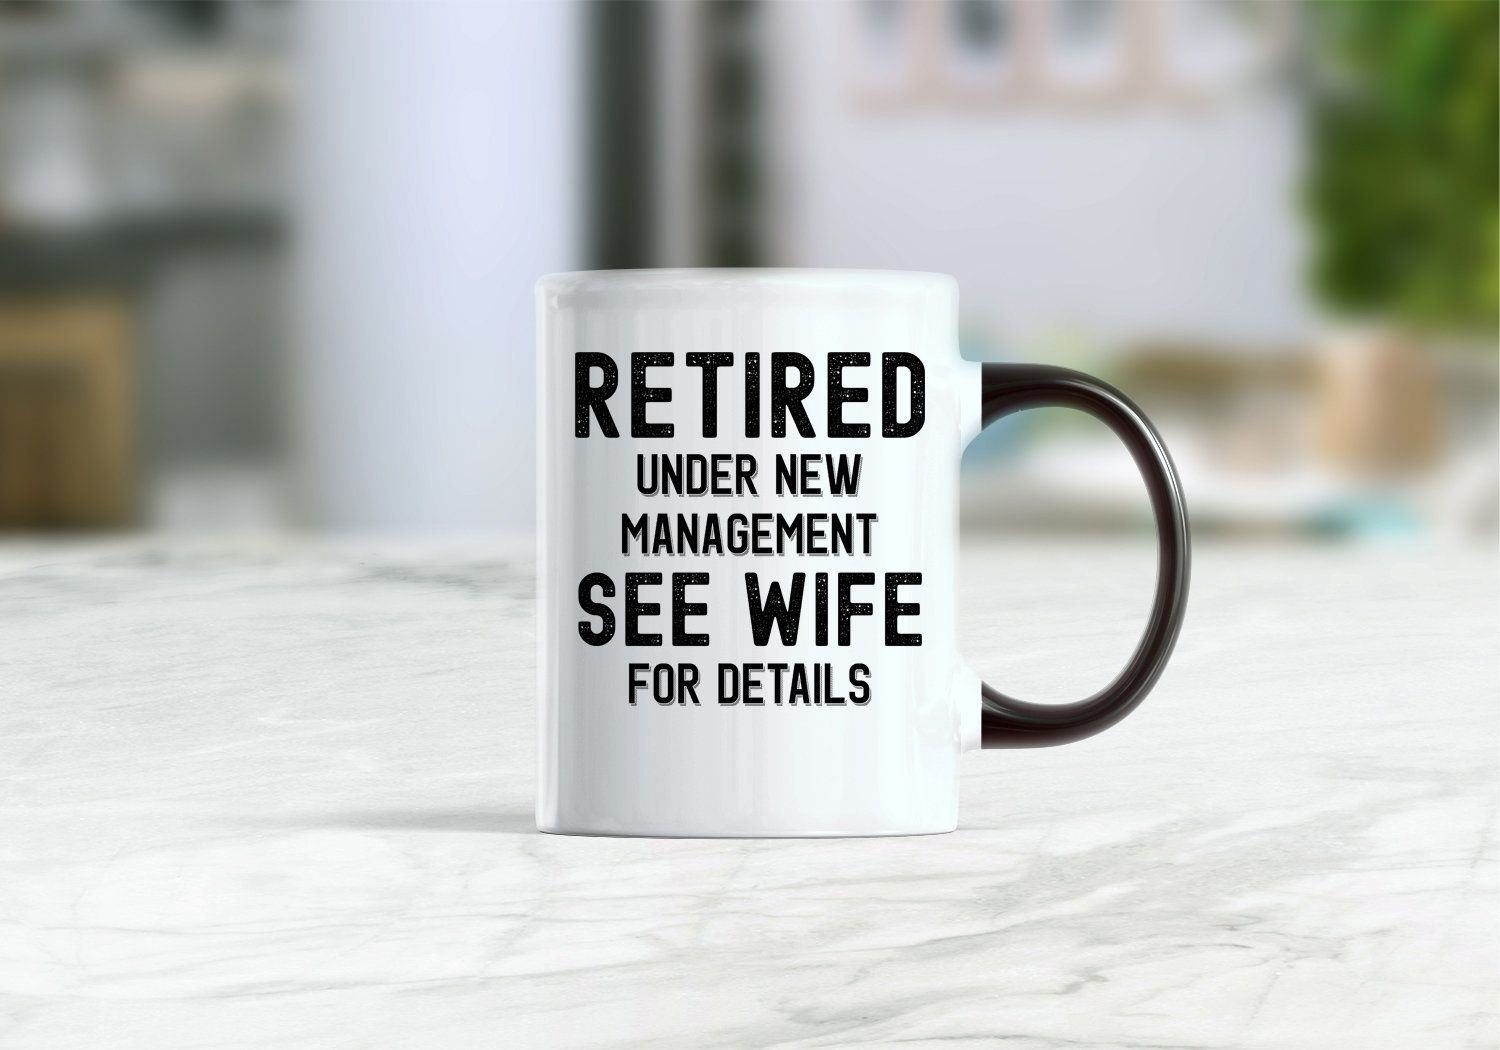 Retirement mug, retirement gift ideas, Retirement gift for husband, funny retirement gifts, retirement coffee mug, gift for him, custom name - Funny retirement gifts, Gifts for husband, Retirement gifts, Best boss gifts, Personalized retirement gifts, Wine gifts - Retirement mug, retirement gift ideas, Retirement gift for husband, funny retirement gifts, retirement coffee mug, gift for him, custom name Beautiful custom made mug, perfect gift for Christmas, Birthday, Weddings, Engagement, Anniversary and Thanksgiving    11 oz white ceramic mug   Printed on BOTH sides  High quality ceramic      Treat yourself or give as a gift to someone special   Easy Grip C shaped handle allow for ease and everyday use    Safe for hot and cold beverages   Dishwasher and microwave safe   If you would like to personalize your mug please leave us a note in the ''note to seller'' section